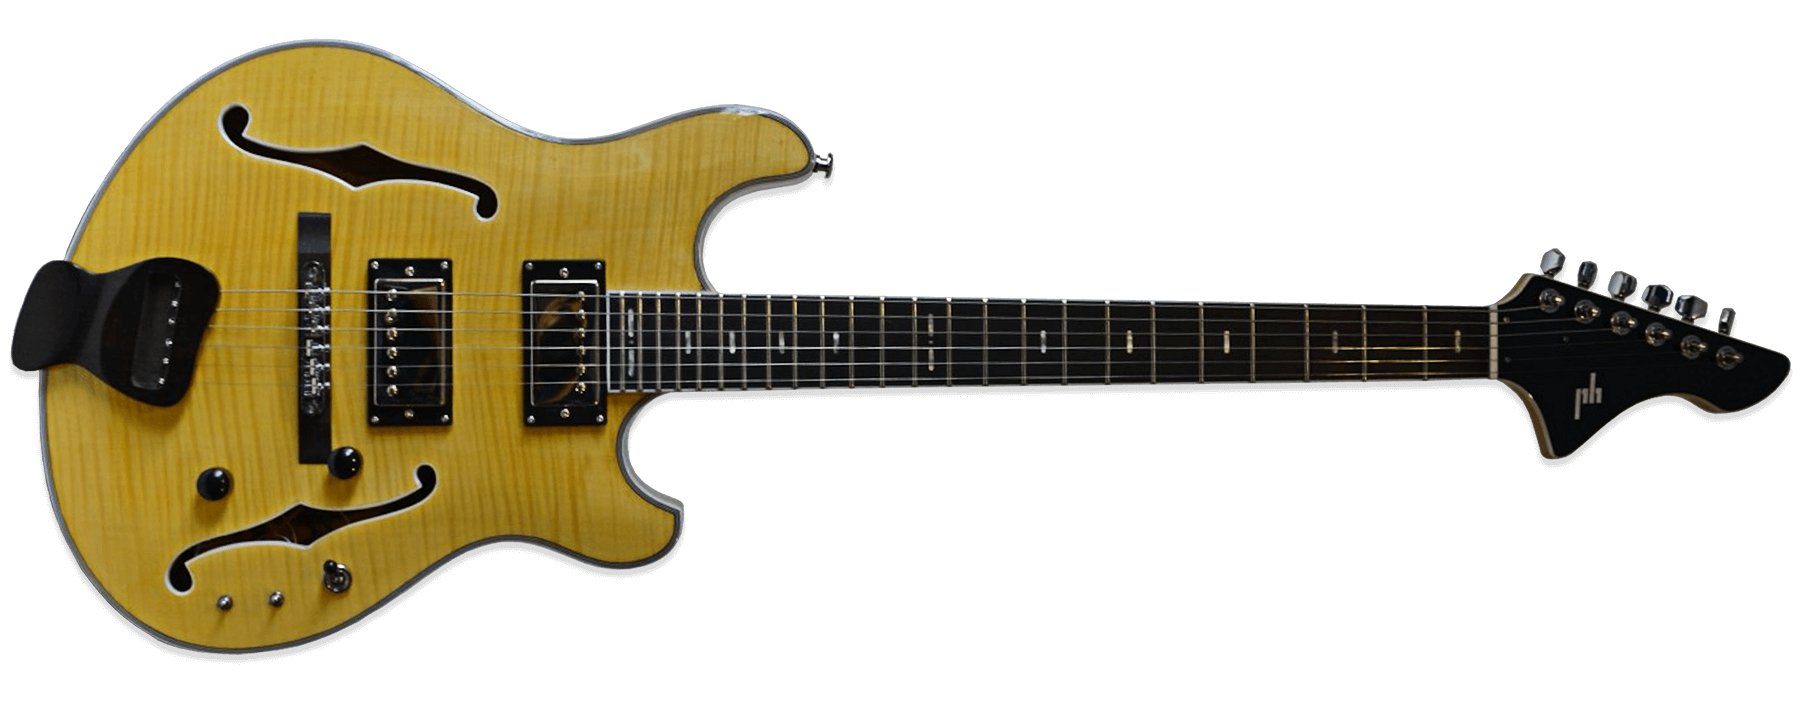 PHRED DockStar Flame Maple